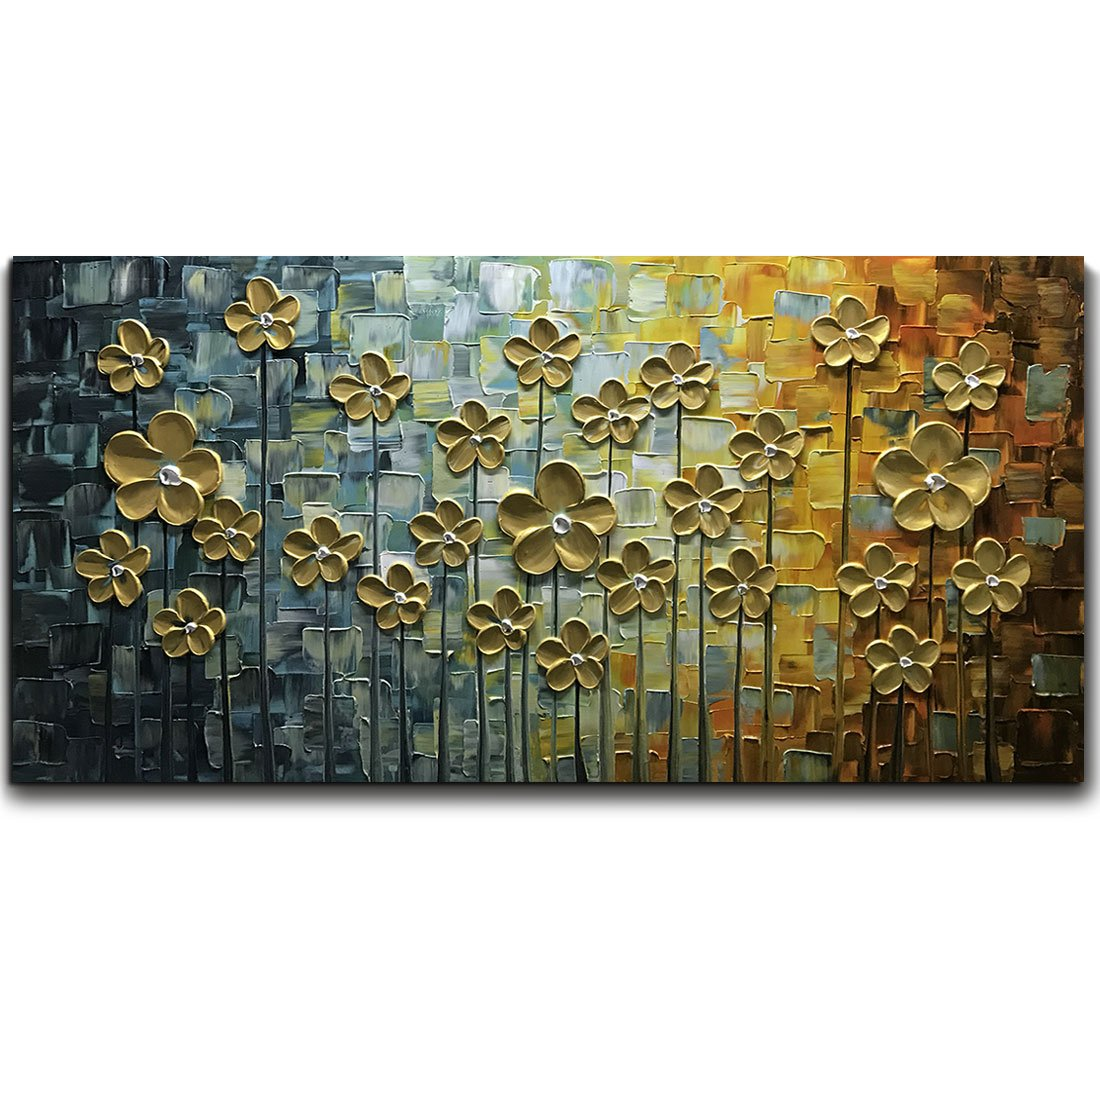 V-inspire Art, 24X48 Inch Gold Daisy Oil Paintings on Canvas Budding Flowers Art 100% Hand-Painted Abstract Artwork Floral Wall Art For livingroom Bedroom Dinning Room Decorative Pictures Home Decor